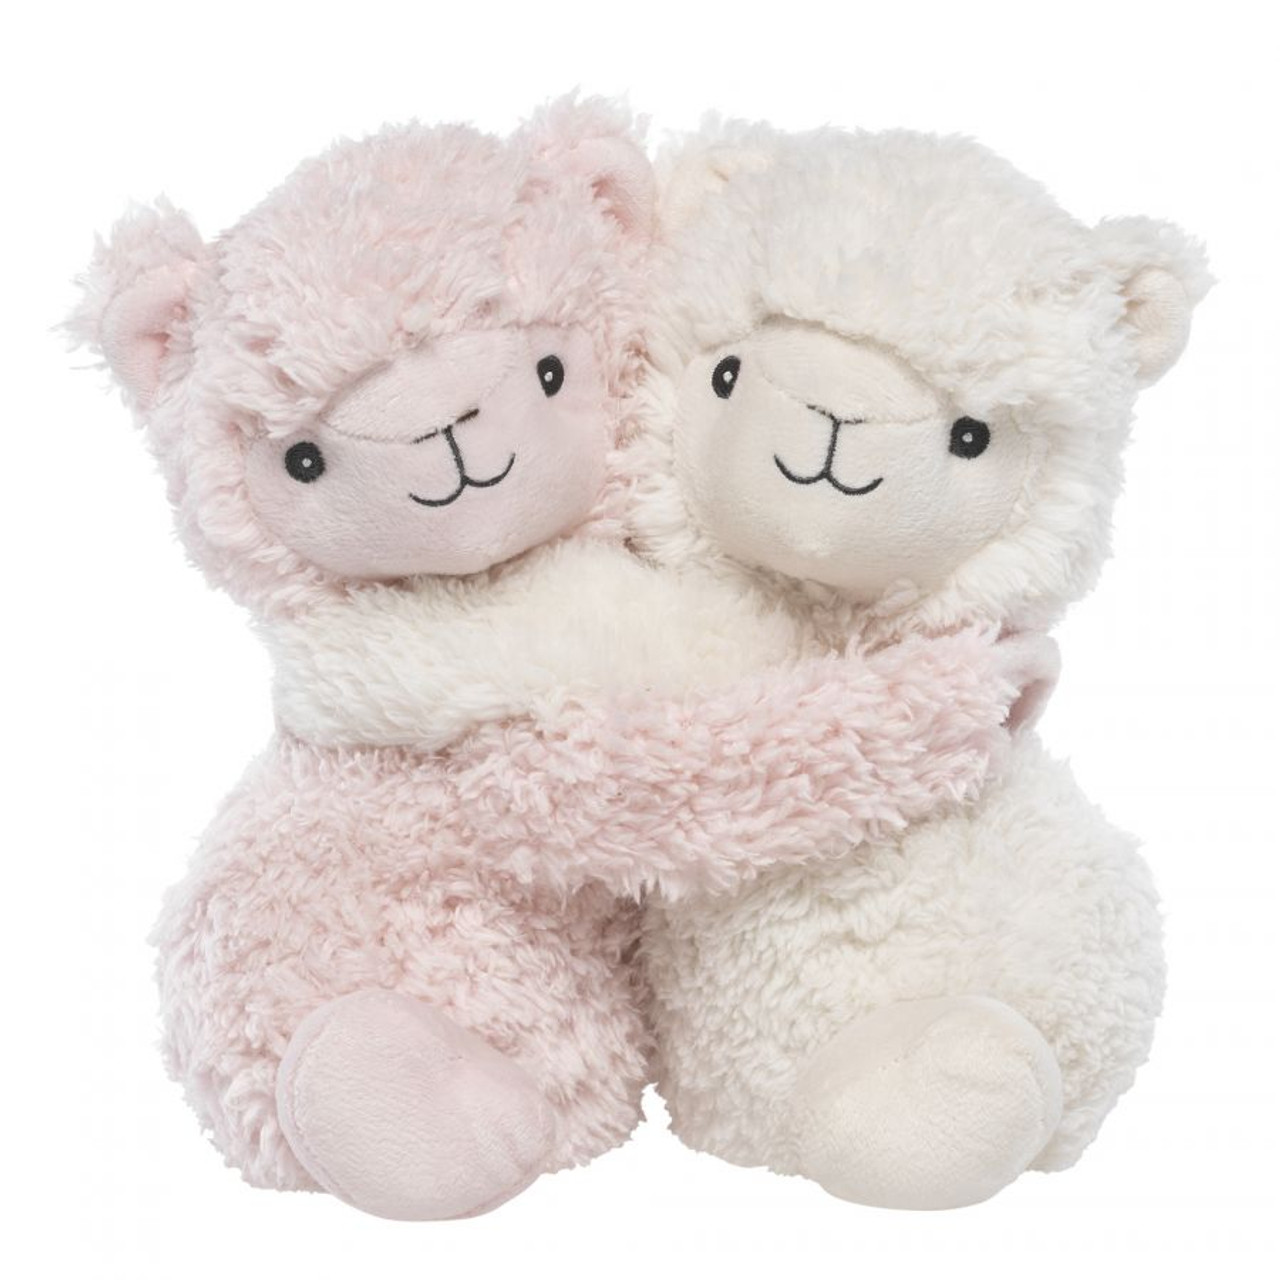 """Warmies®Hugsare the newest addition to the family of Warmies®. This super cute duo of heatable characters are gently scented with French lavender and provide the same warmth and aromatic comfort. Their arms wrap around each other and attach with Velcro making them perfect for mixing and matching to other Warmies® Hugs characters. You can also attach them anywhere and bring them with you on the go. Available in multiple adorable characters that are TWO cute not to LOVE. Warmies® are suitable for all ages. Approximately 7"""" long."""